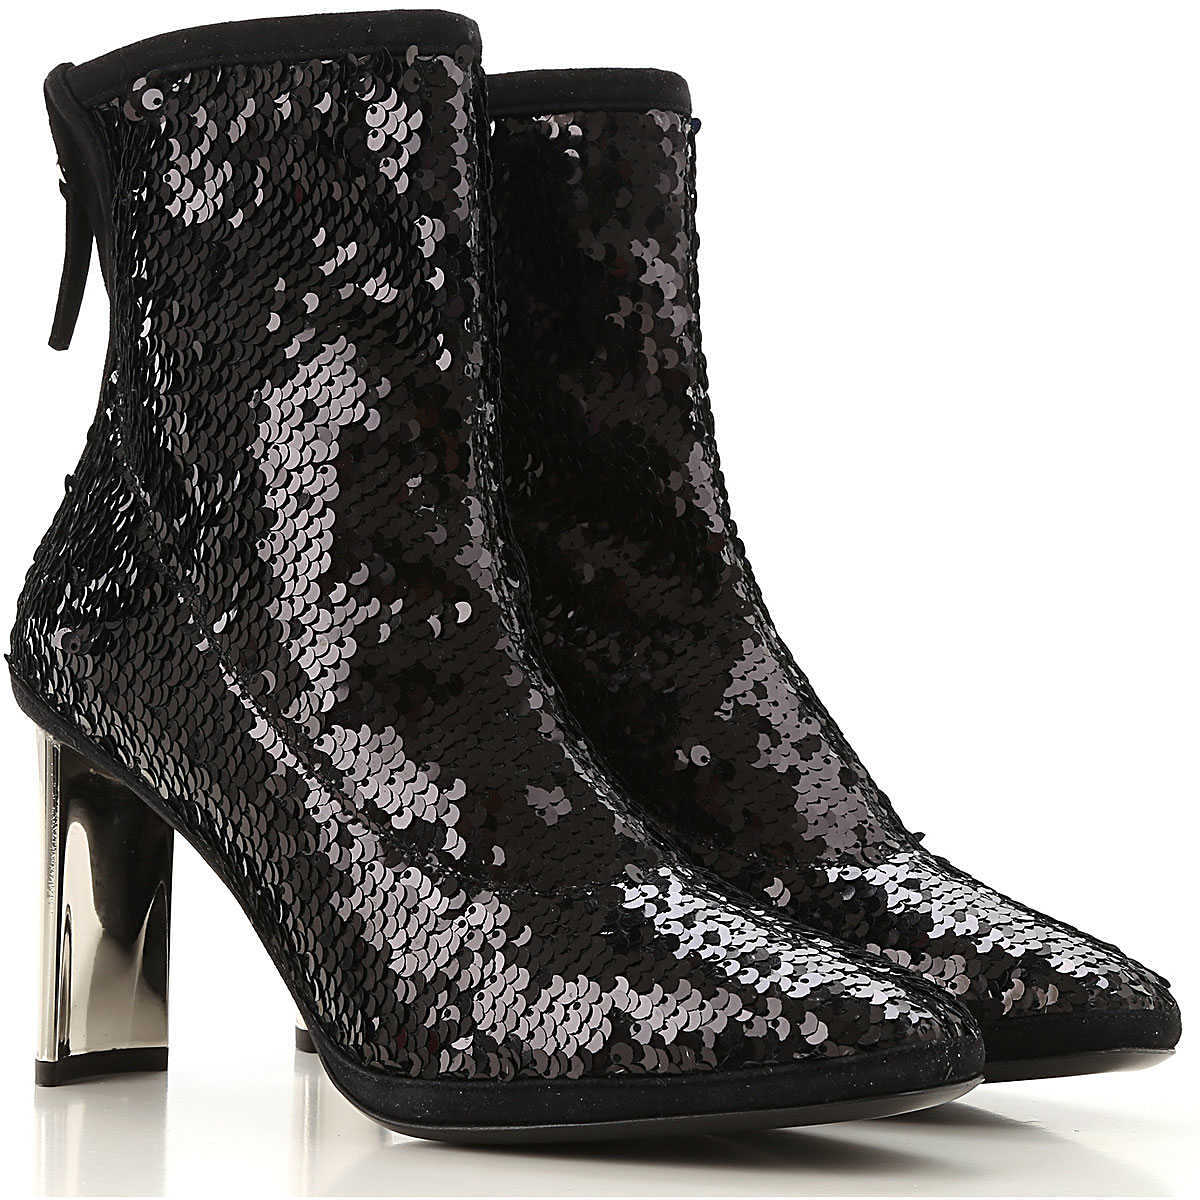 Giuseppe Zanotti Design Boots for Women Booties On Sale in Outlet DK - GOOFASH - Womens BOOTS